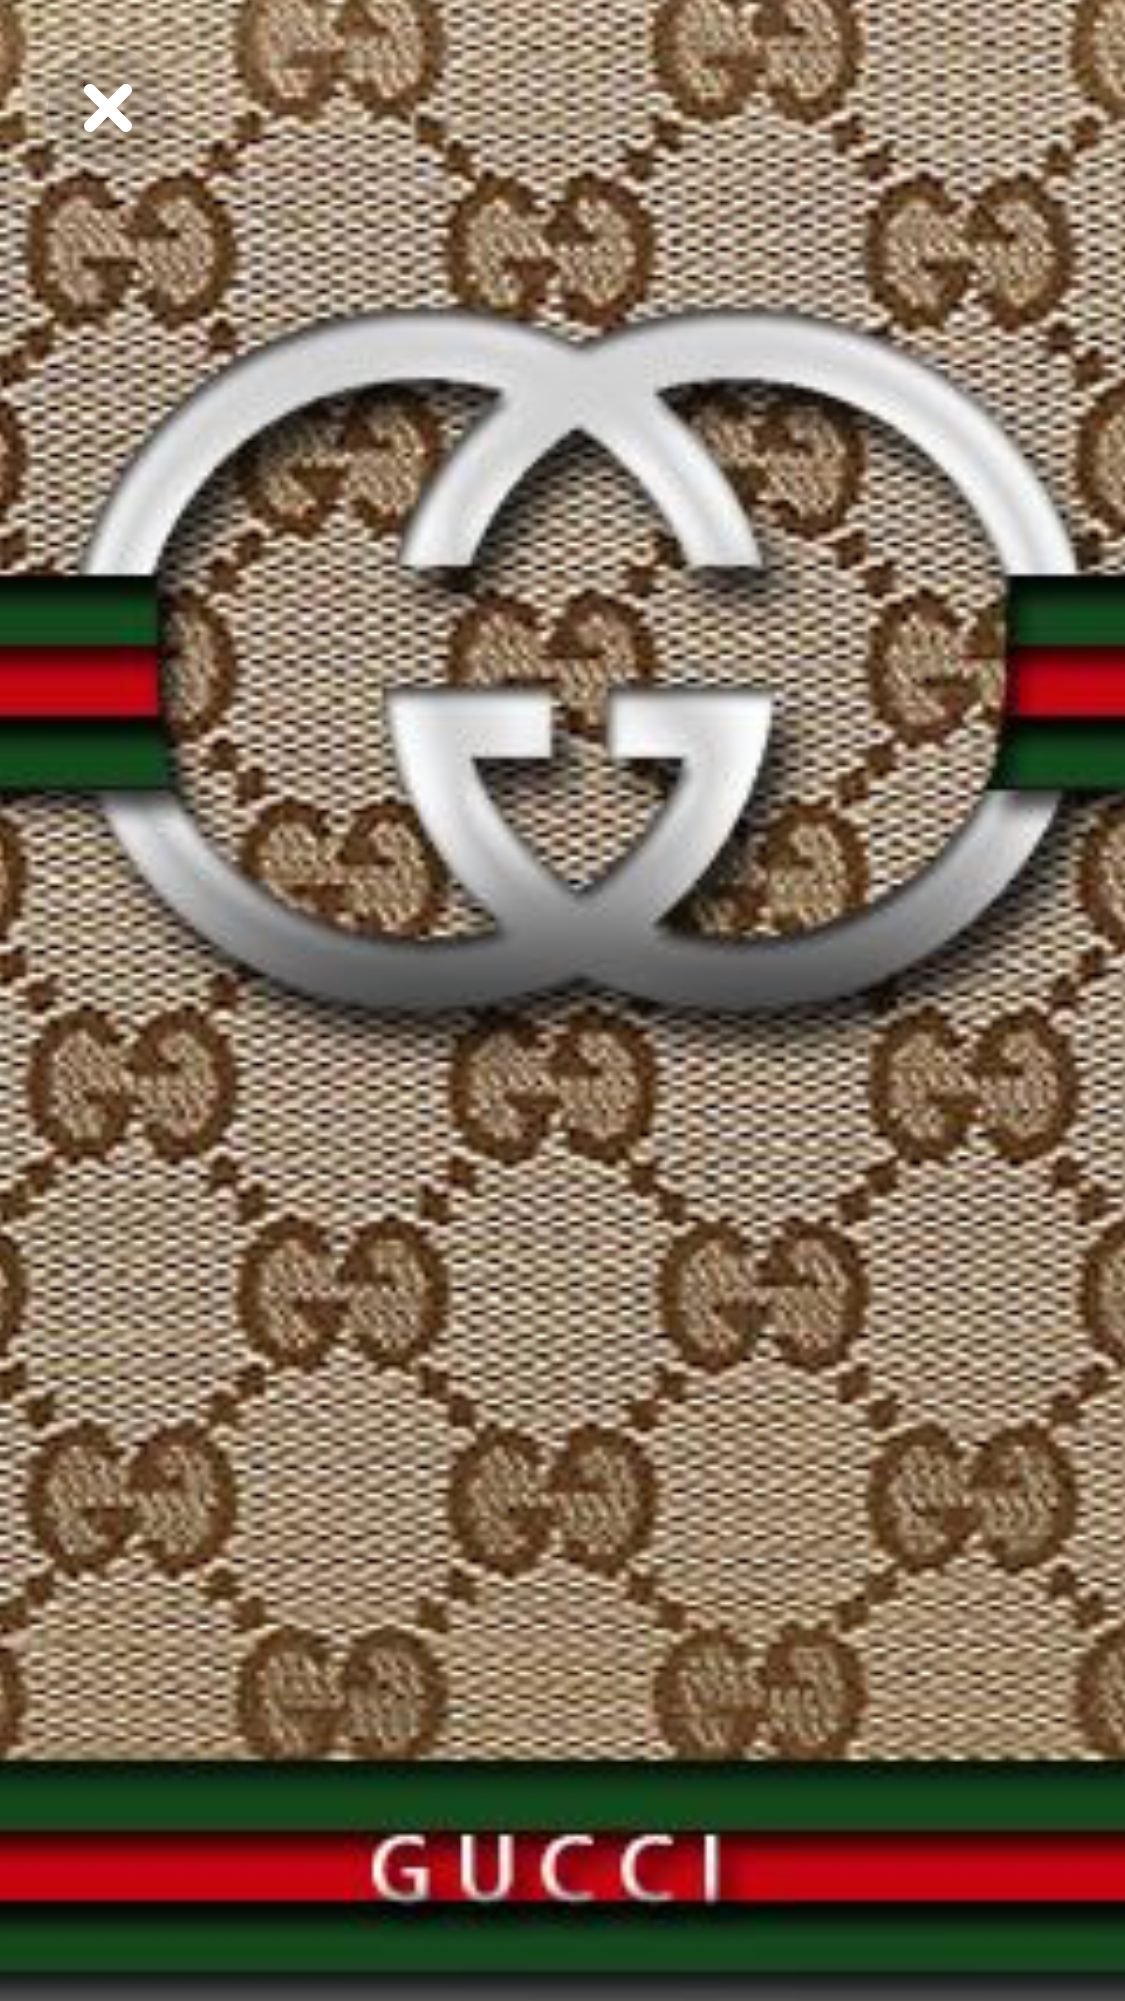 Iphone 11 Gucci Case 2948251 Hd Wallpaper Backgrounds Download